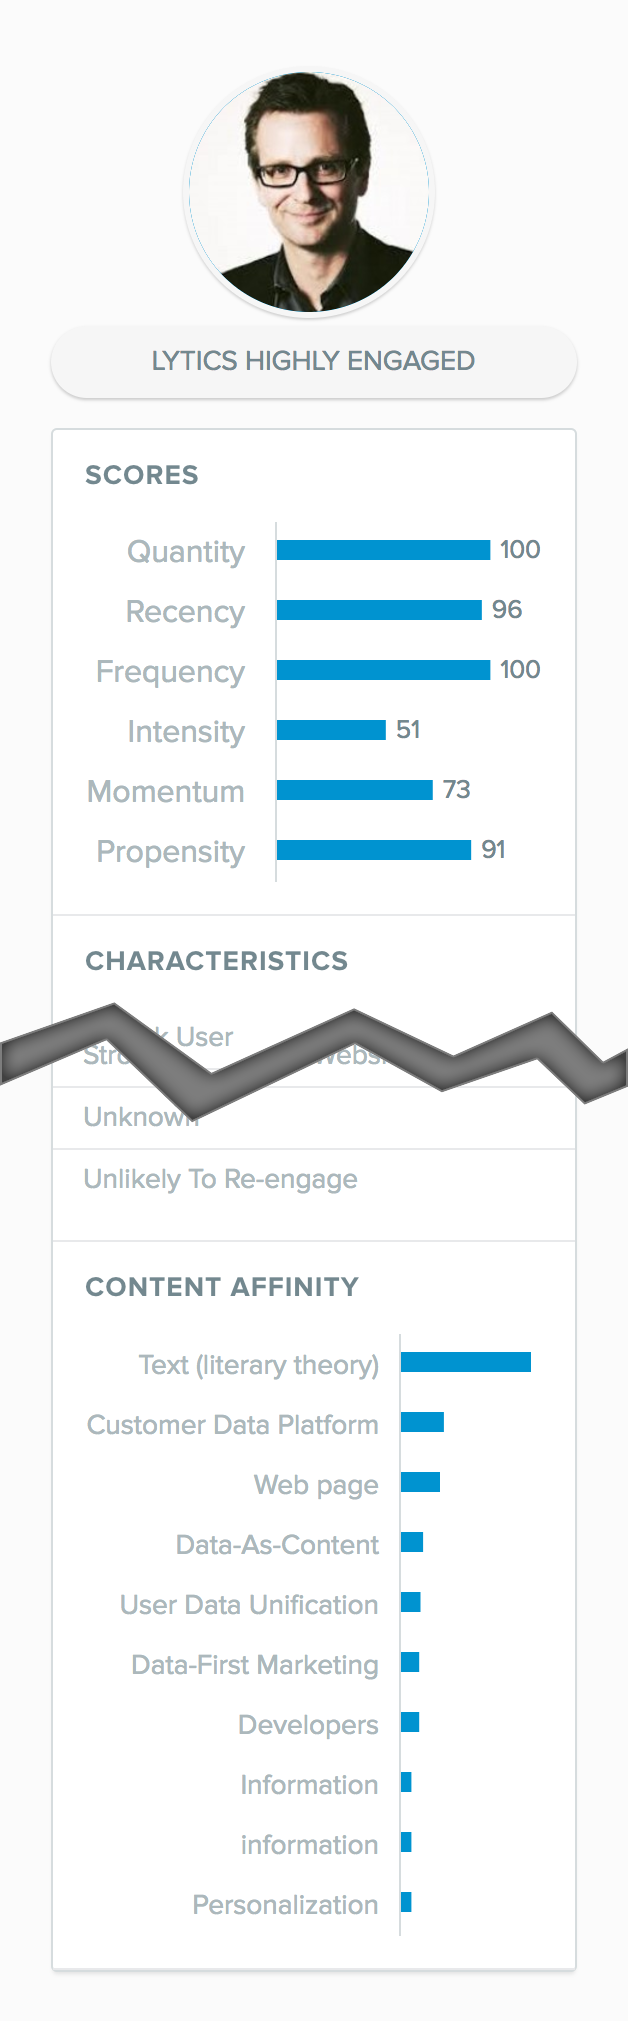 Topic affinities as seen on a user profile